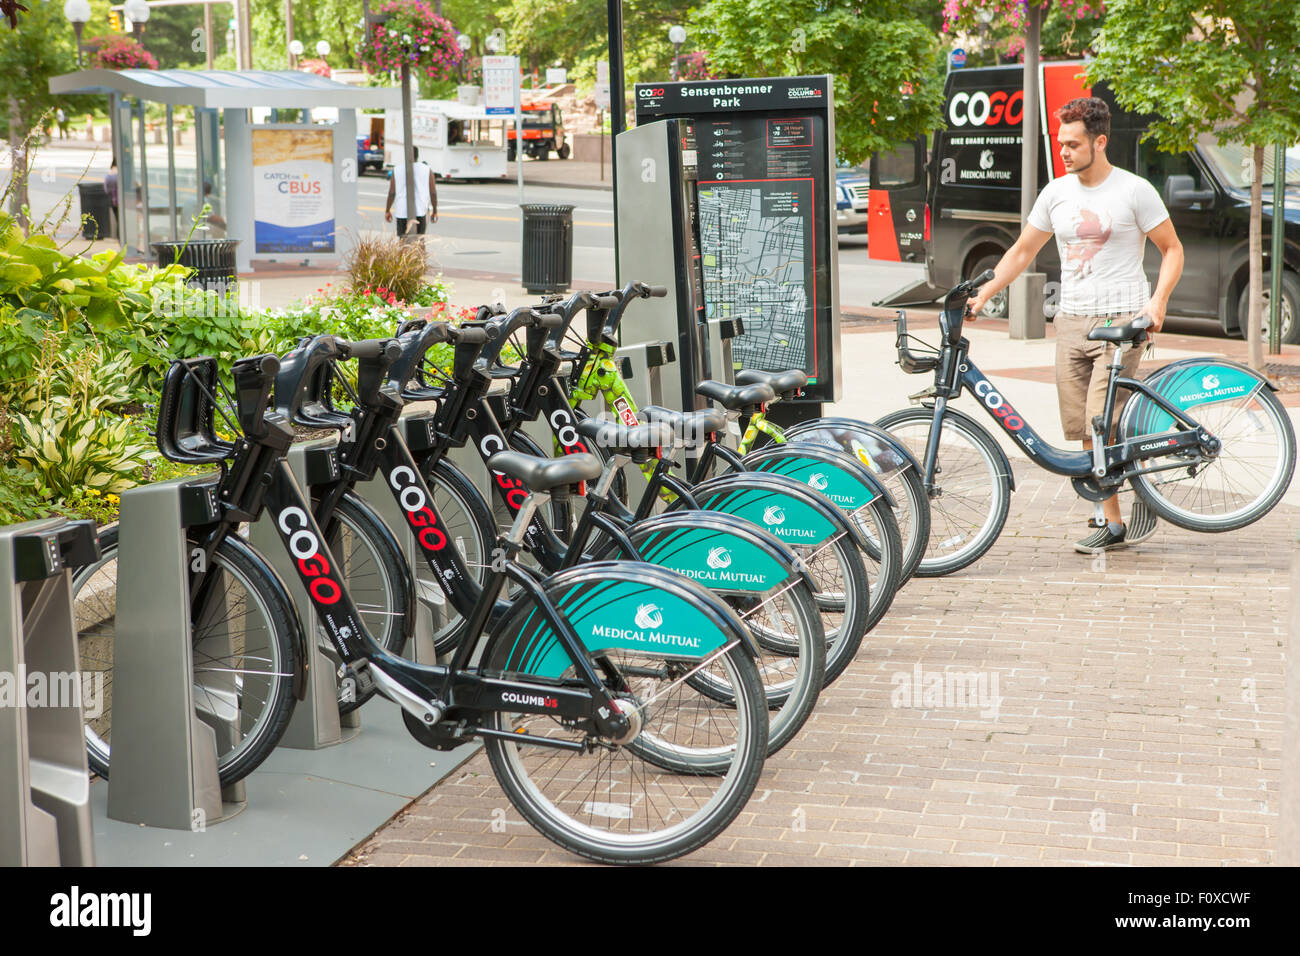 A young man restocks a CoGo docking station with bicycles at the Sensenbrenner Park station in Columbus, Ohio. - Stock Image